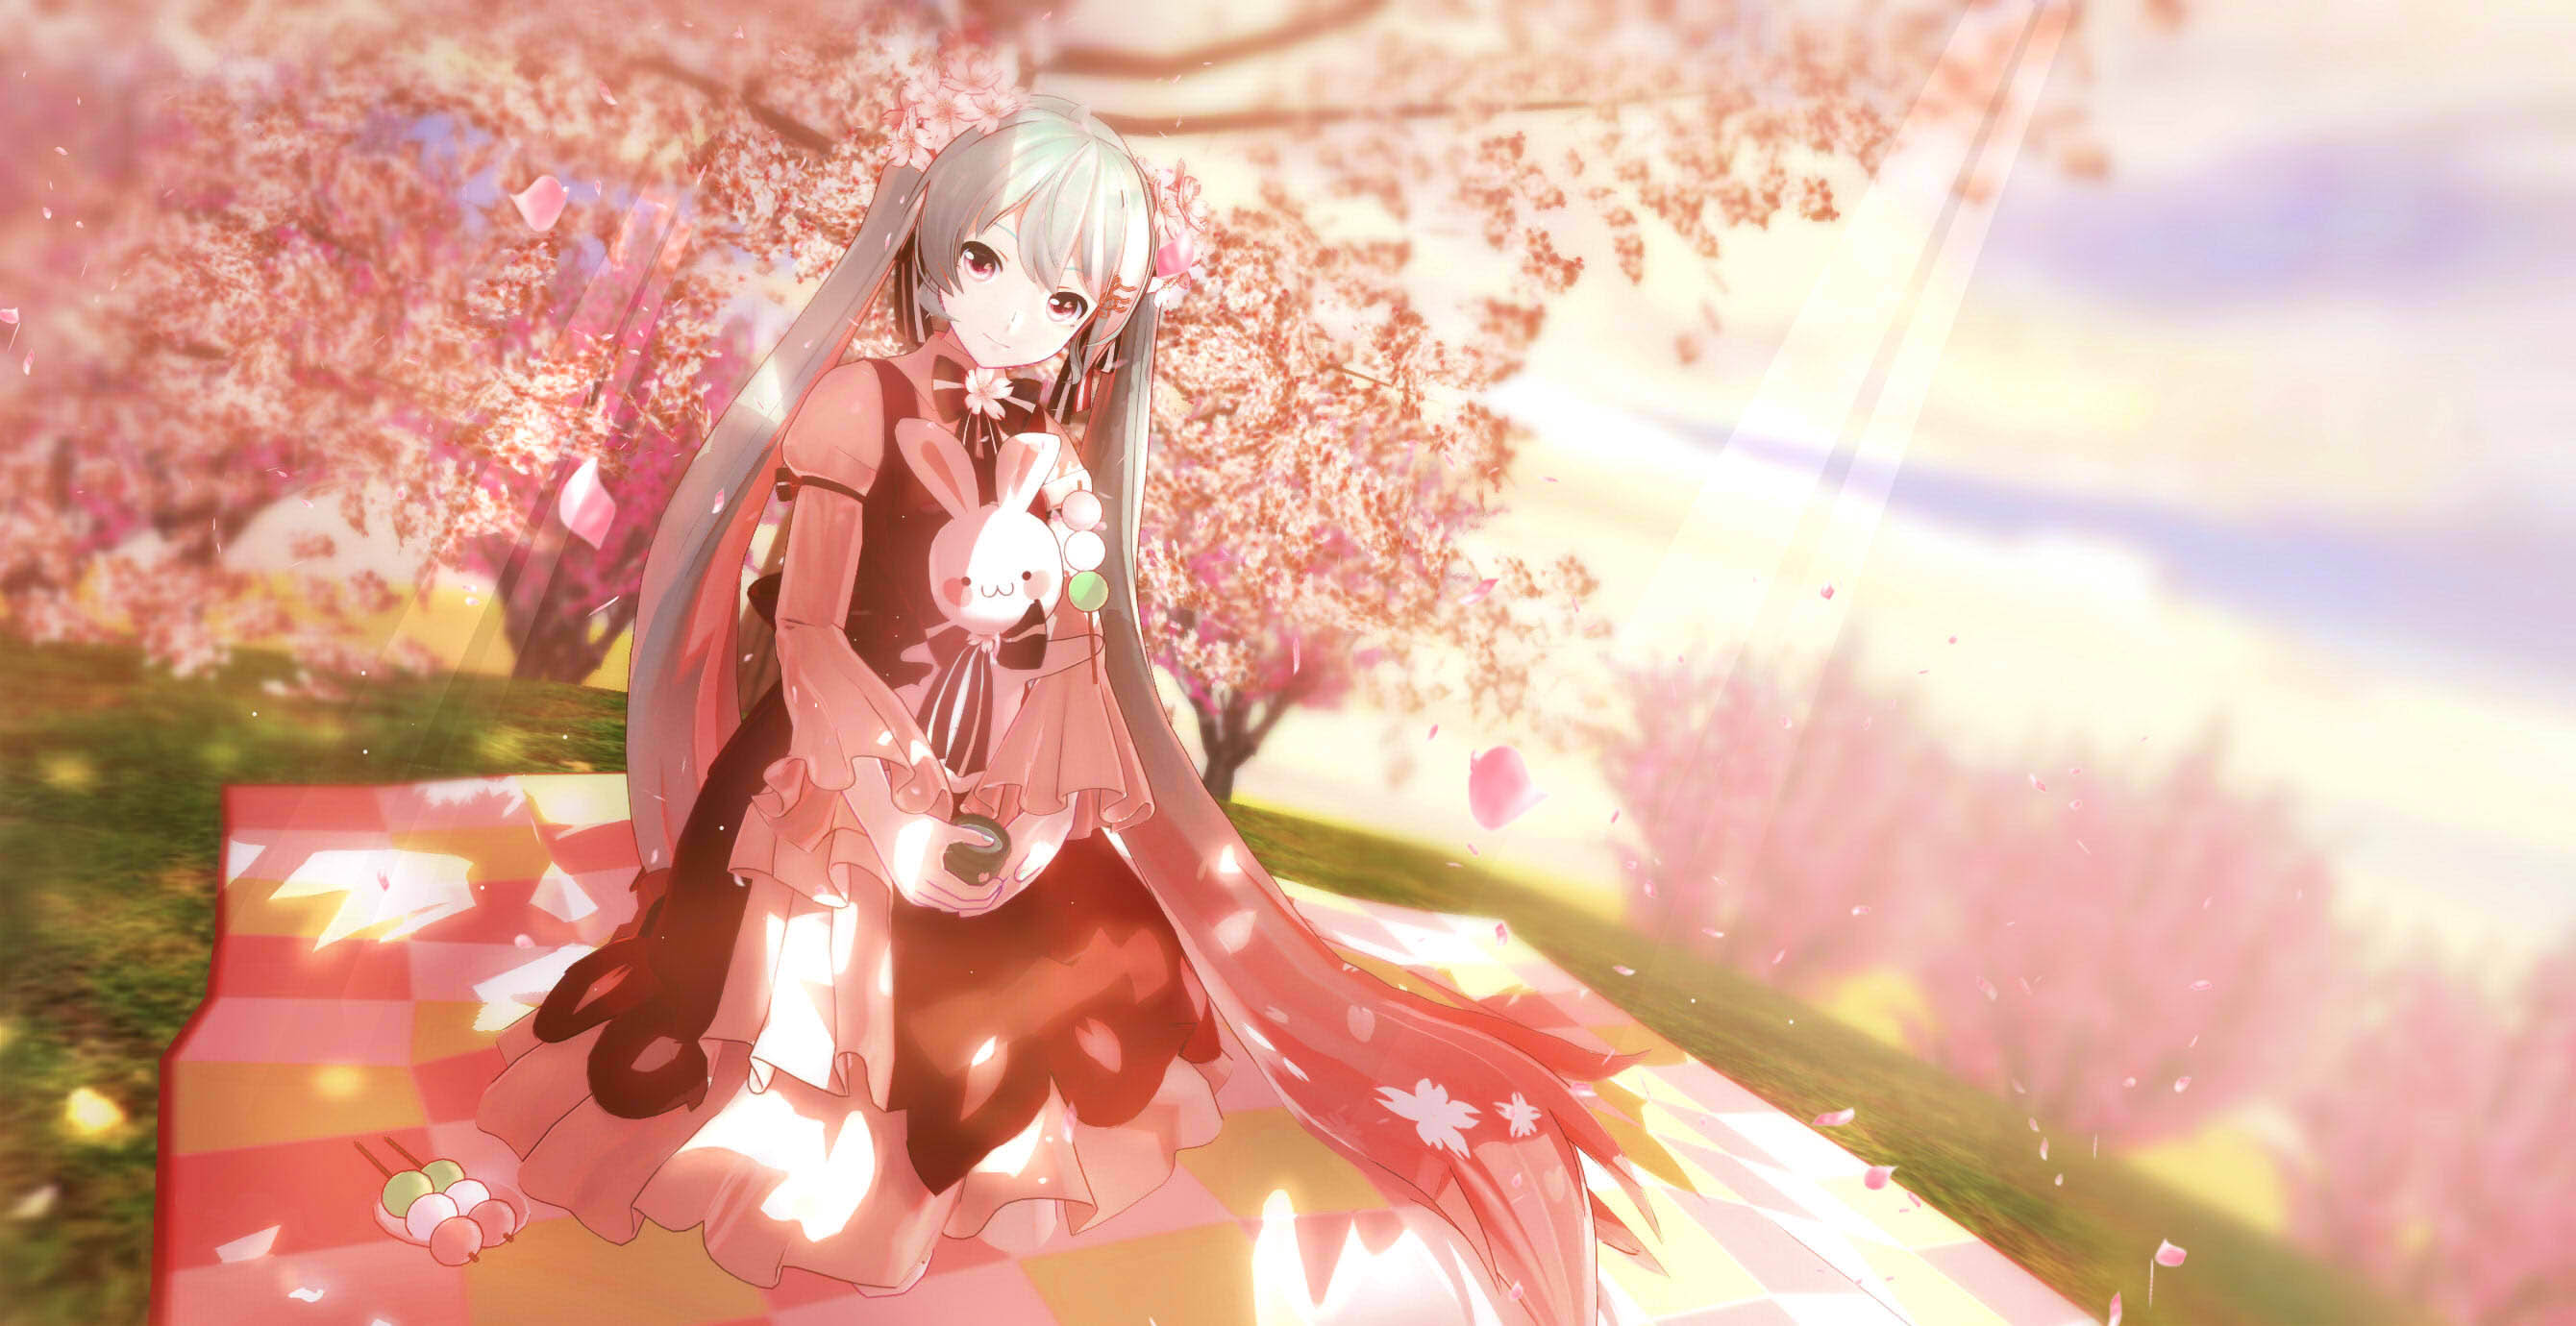 Online Home Design Free Yyb Type Sakura Miku Imoko Ver Joins The Mmd Community